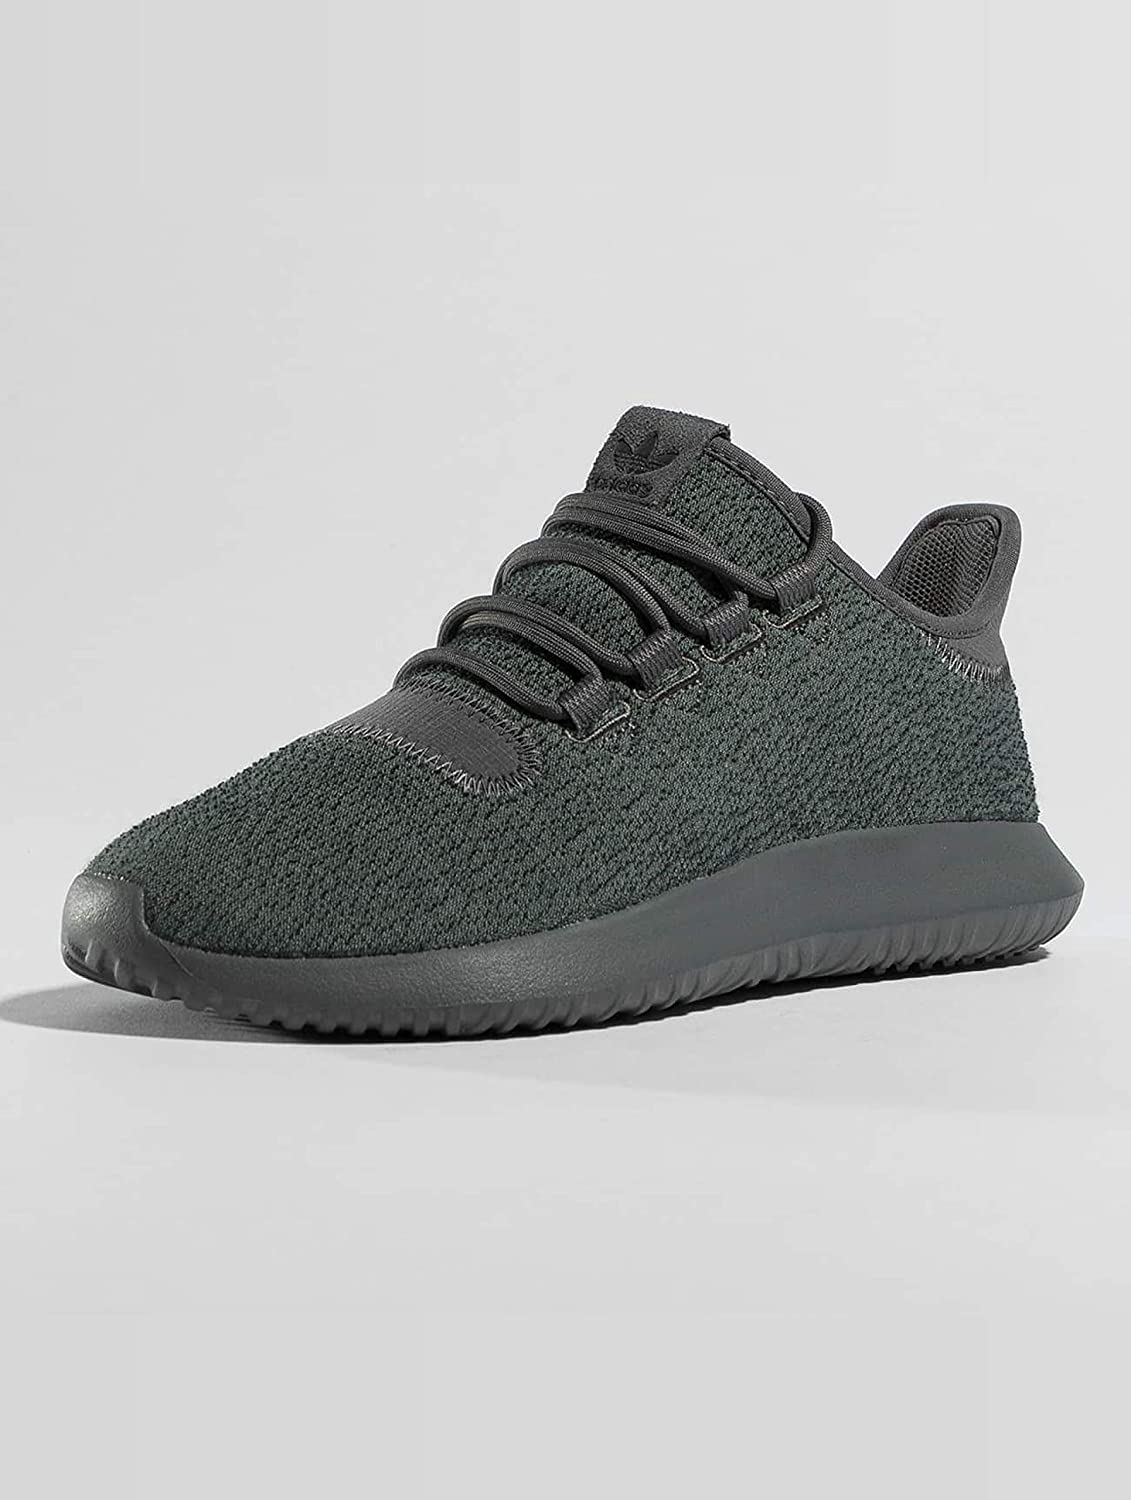 Adidas Tubular Shadow W Women's Running Shoes, Grey (Gricin